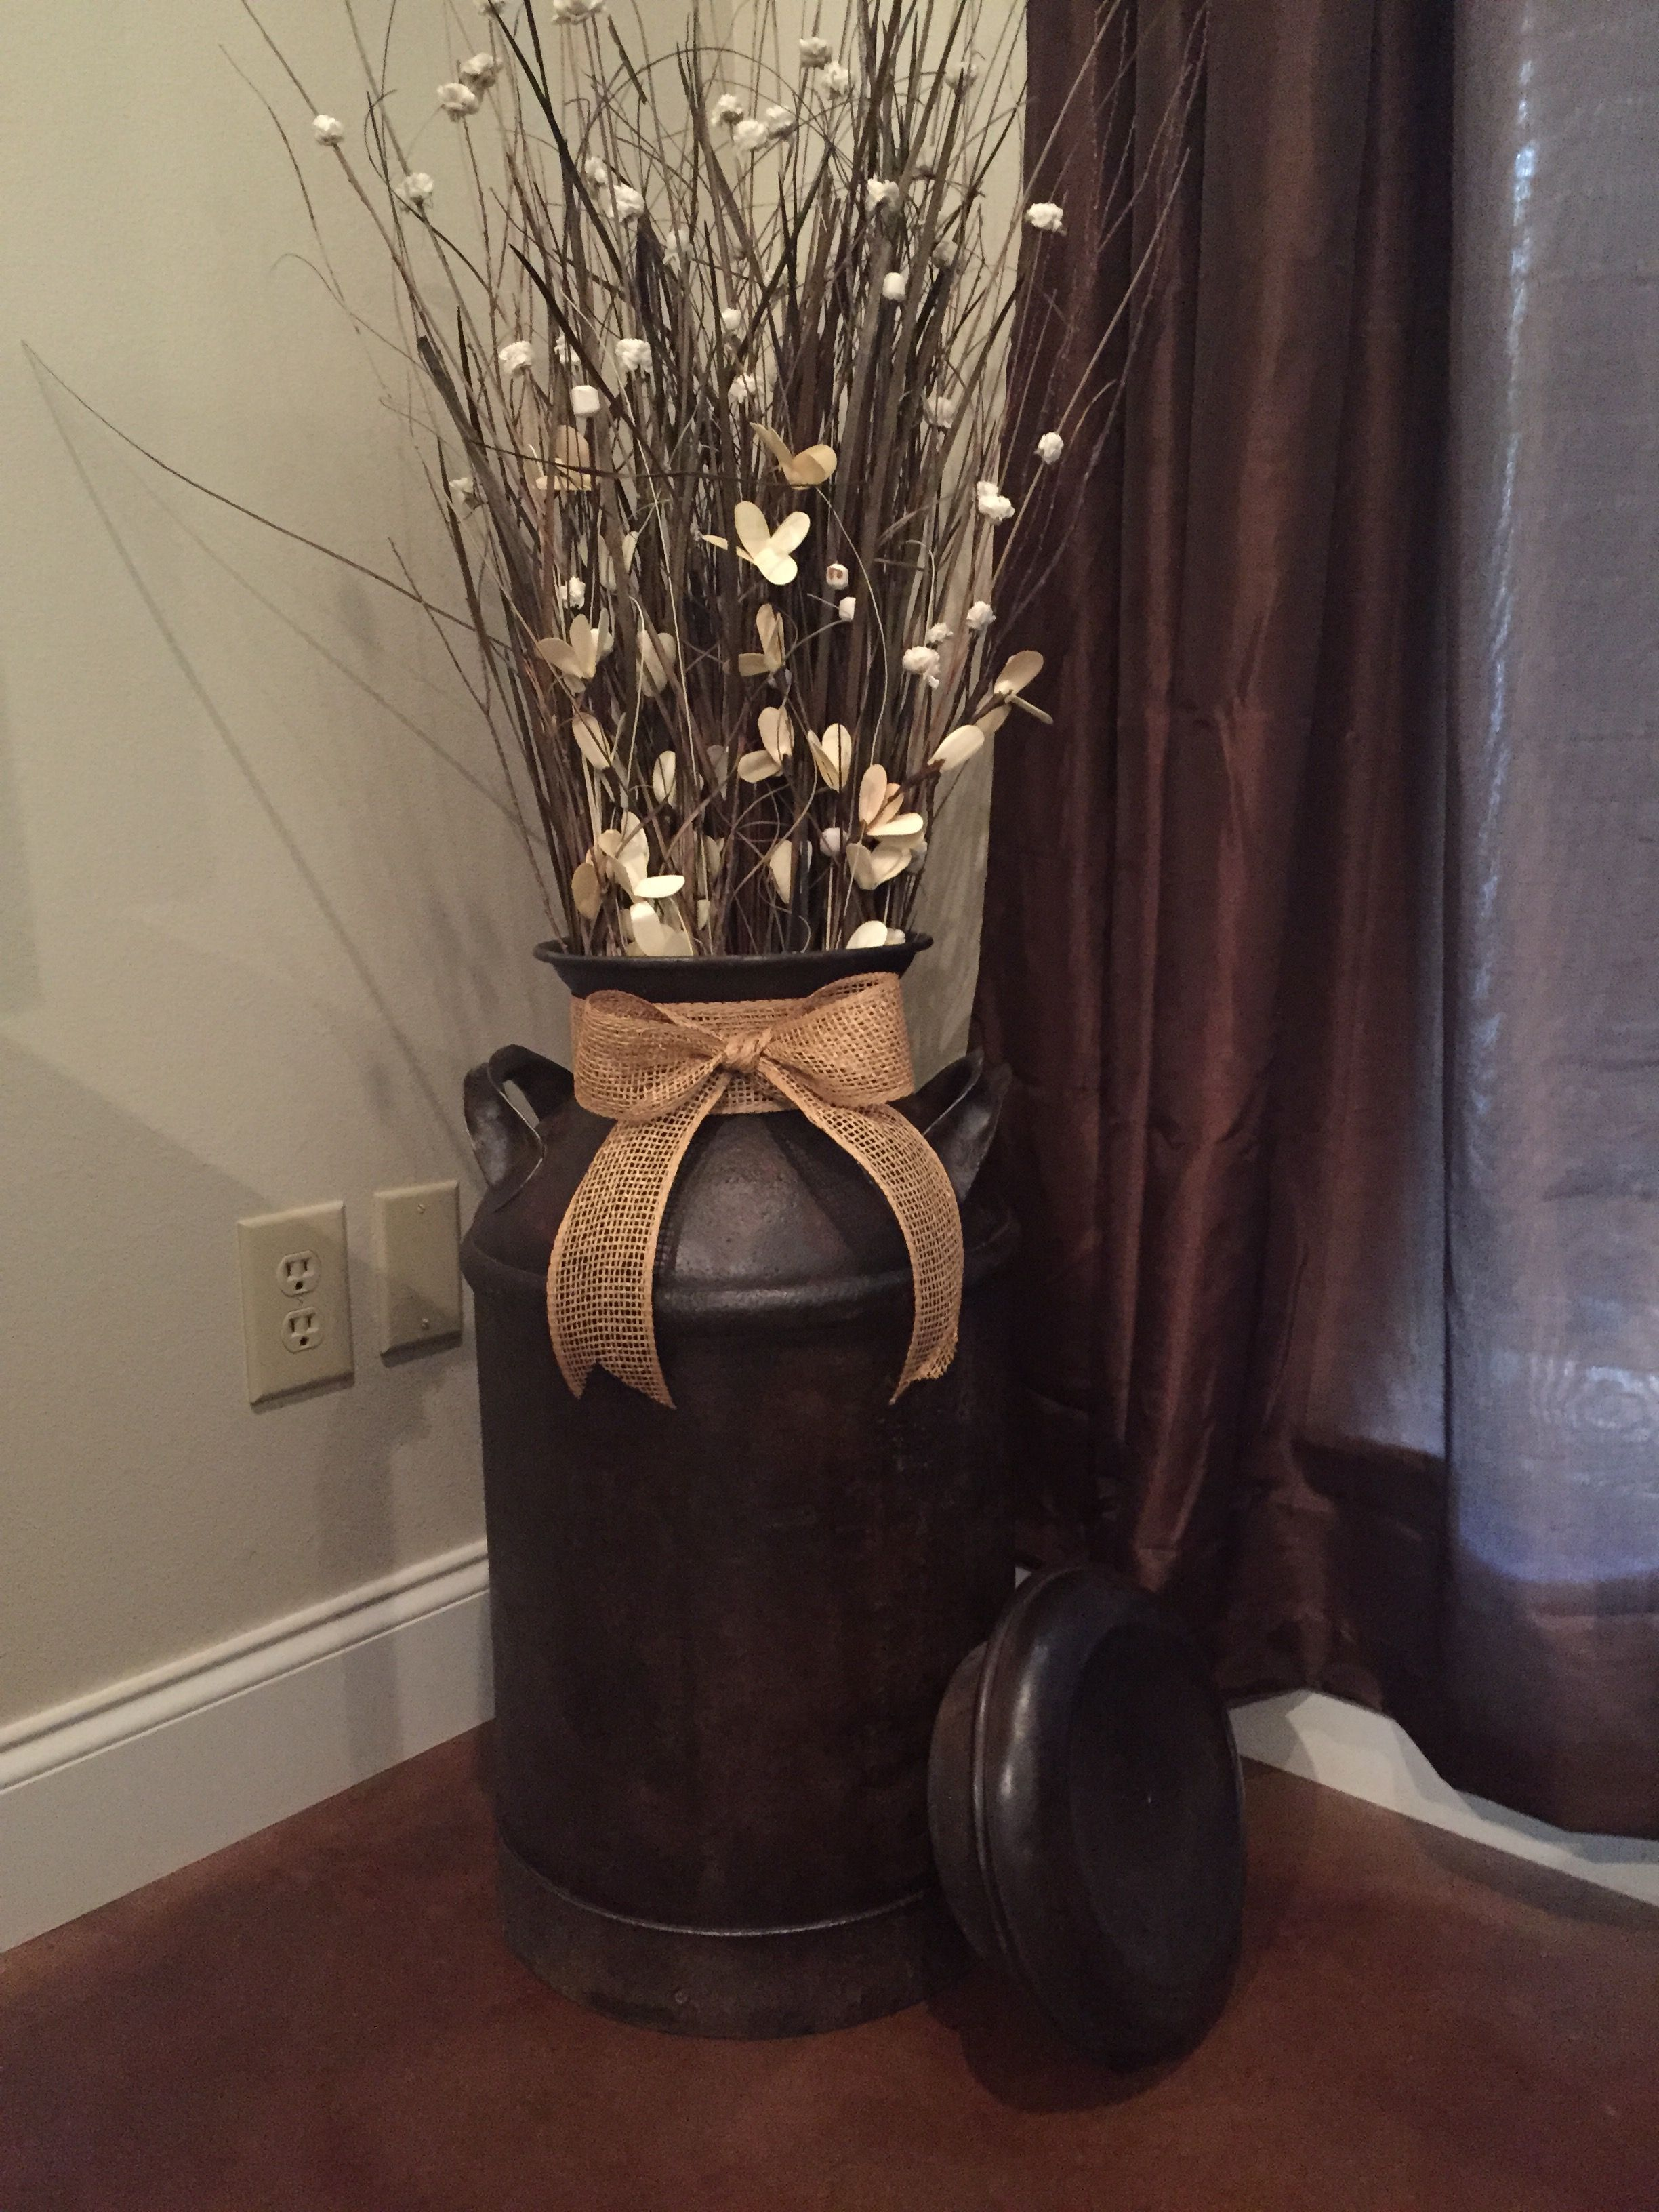 Antique milk can turned into home decor! Milk can decor